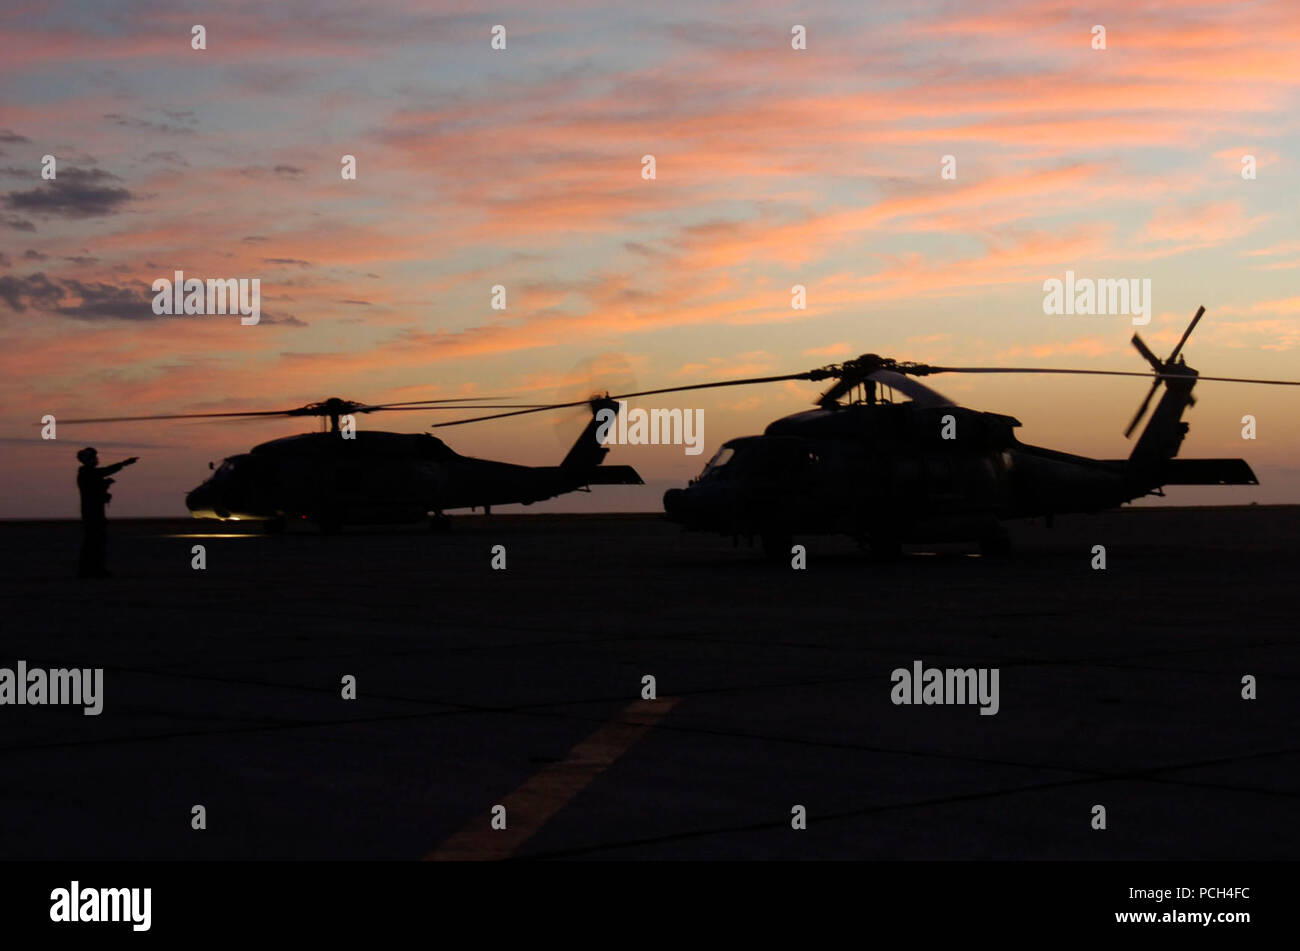 Aircrew directs Navy helicopters at U.S. Naval Station Guantanamo Bay airfield as the sunsets, Jan. 19. The aircraft is part of Fleet Logistics Squadron VRC-40 deployed in support of Operation Unified Response, providing humanitarian assistance to Haiti. Stock Photo